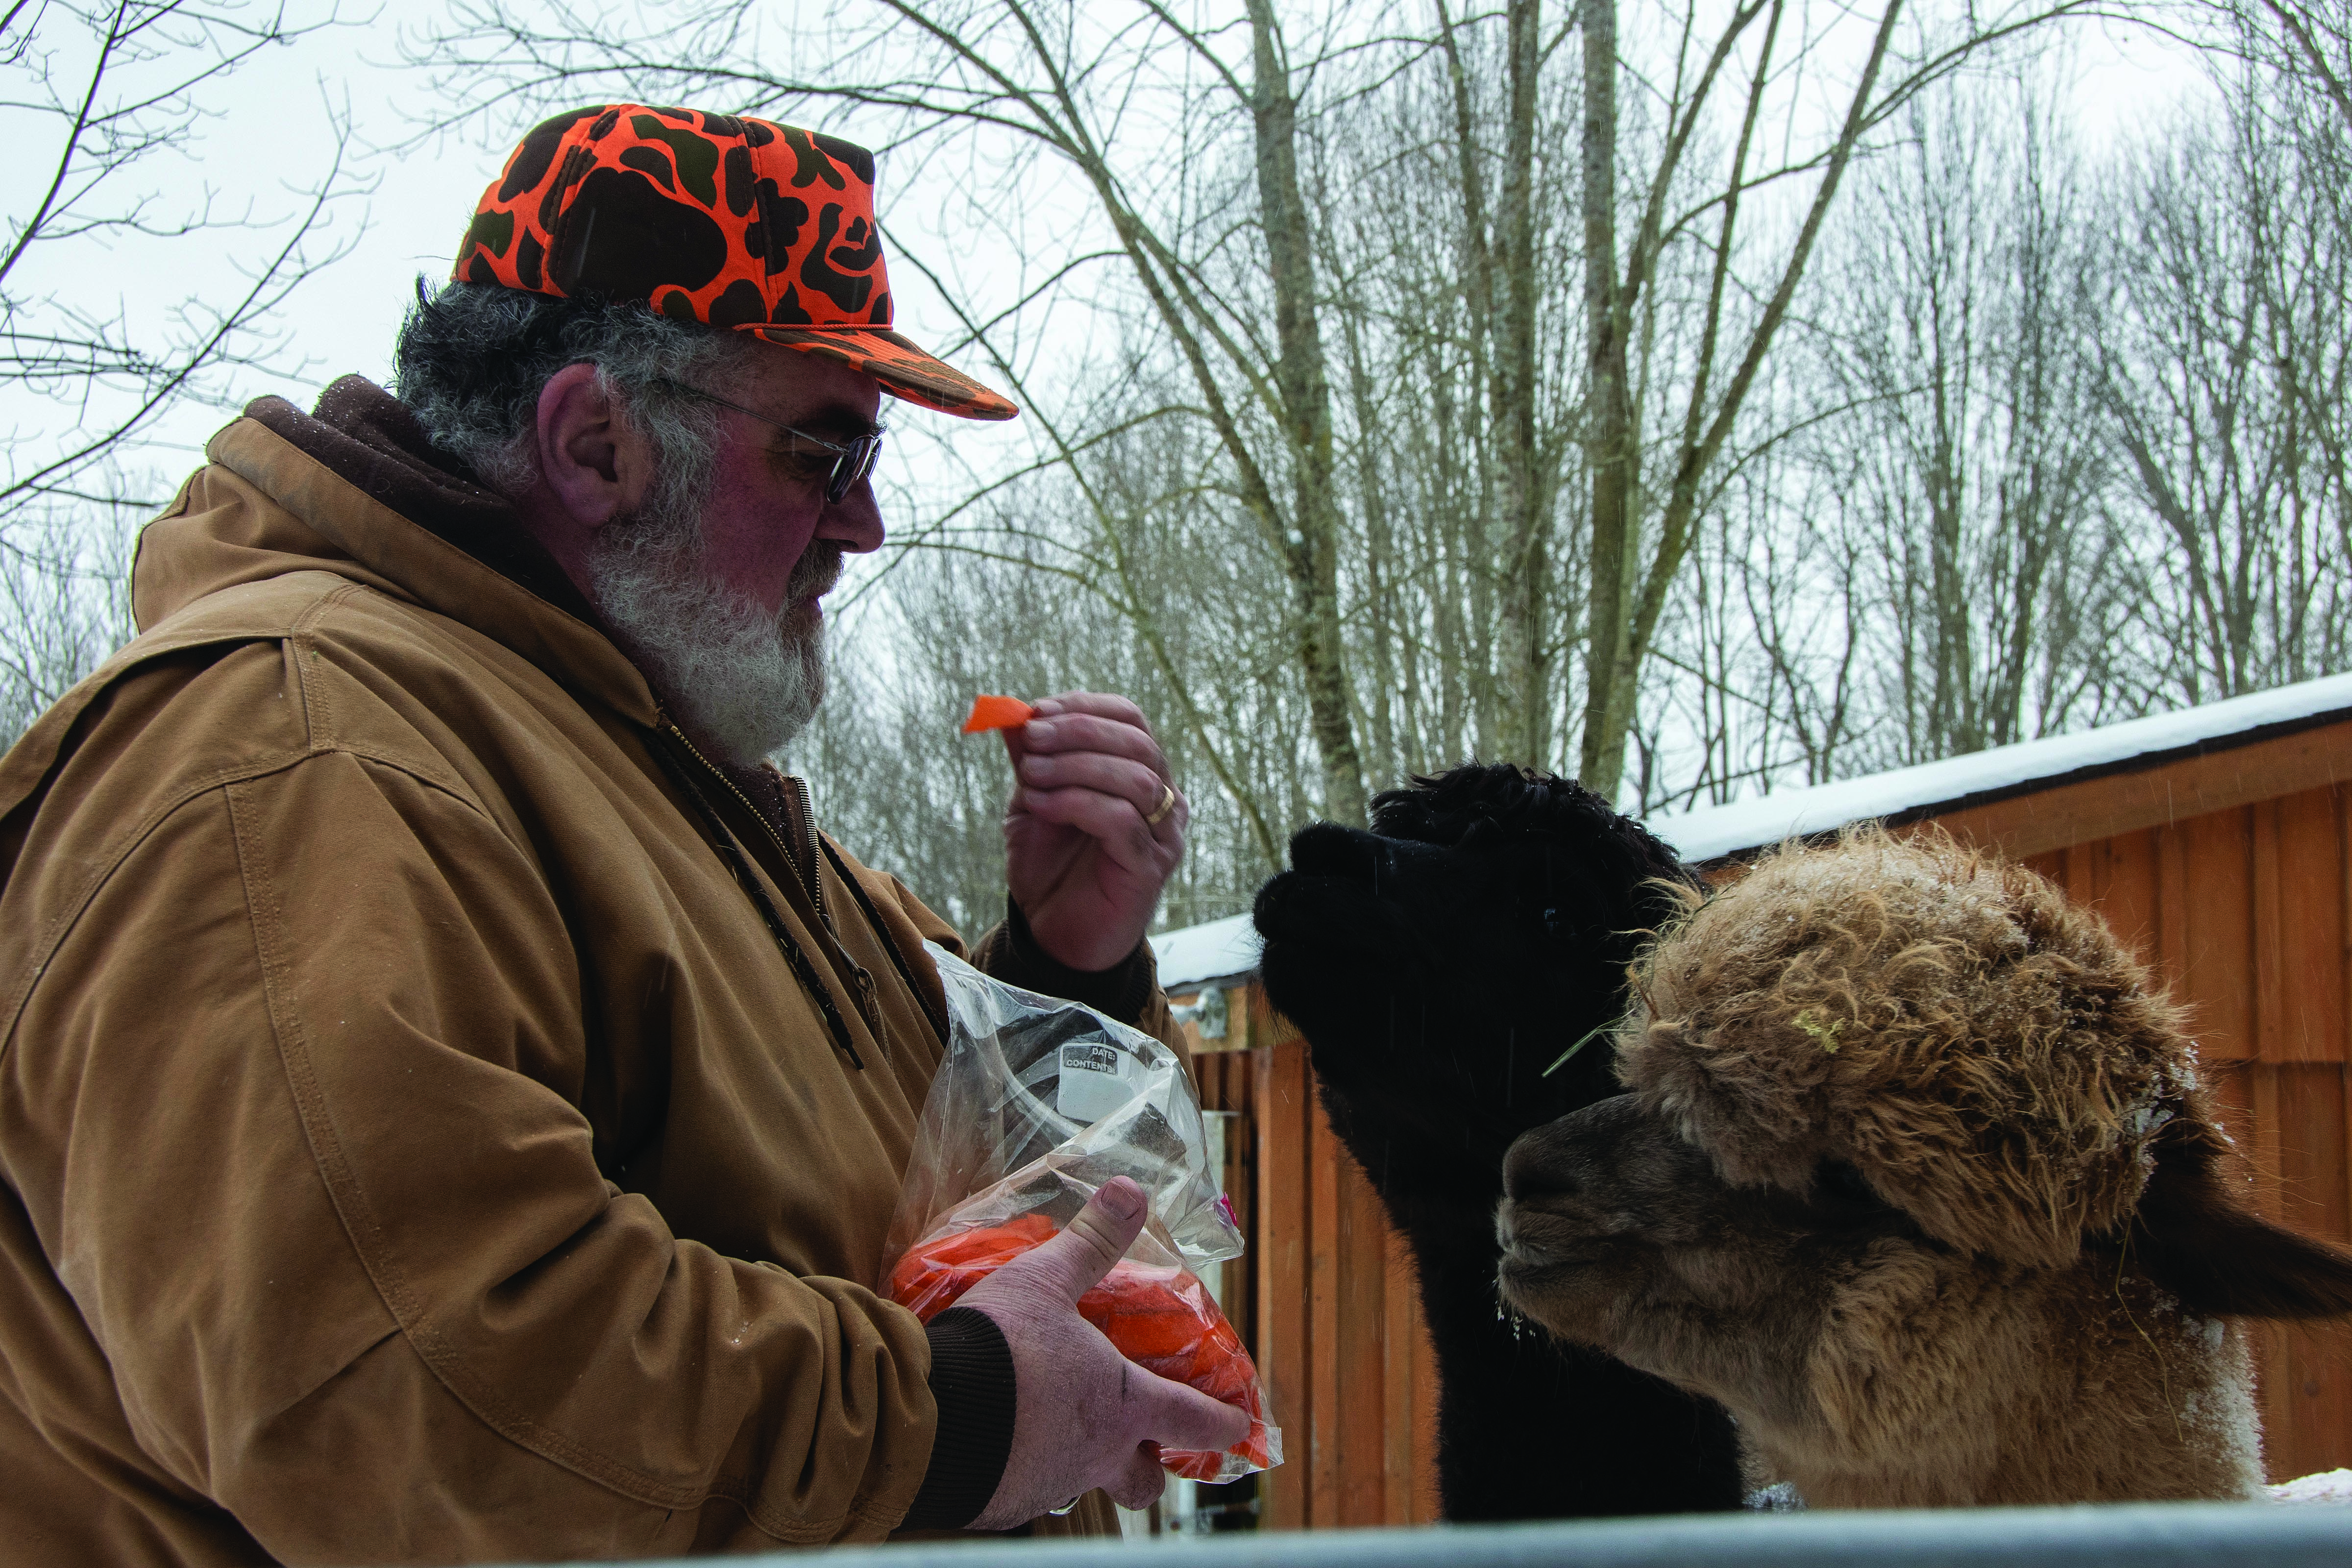 PEACEFUL EXISTENCE: Ray DiBono, owner of Artisan Alpacas LLC, feeds a carrot to one of the 12 alpacas at his home in Dushore, Pa. DiBono, a Sullivan County Rural Electric Cooperative member, credits his herd for his constant good mood.